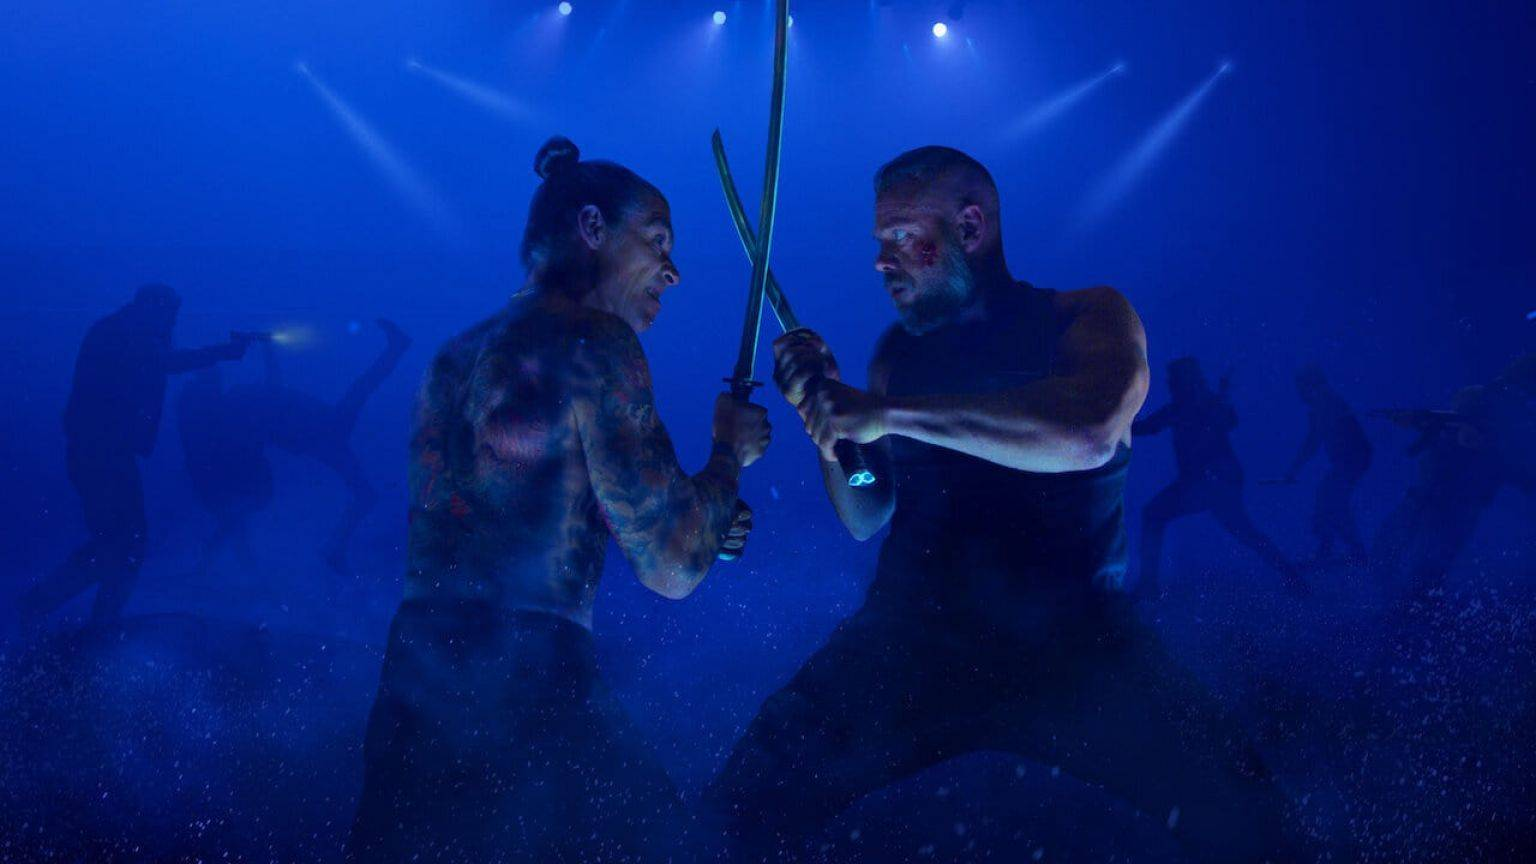 Netflix shares spectacular trailer of Spanish action movie 'Extremo' -  Paudal - Paudal